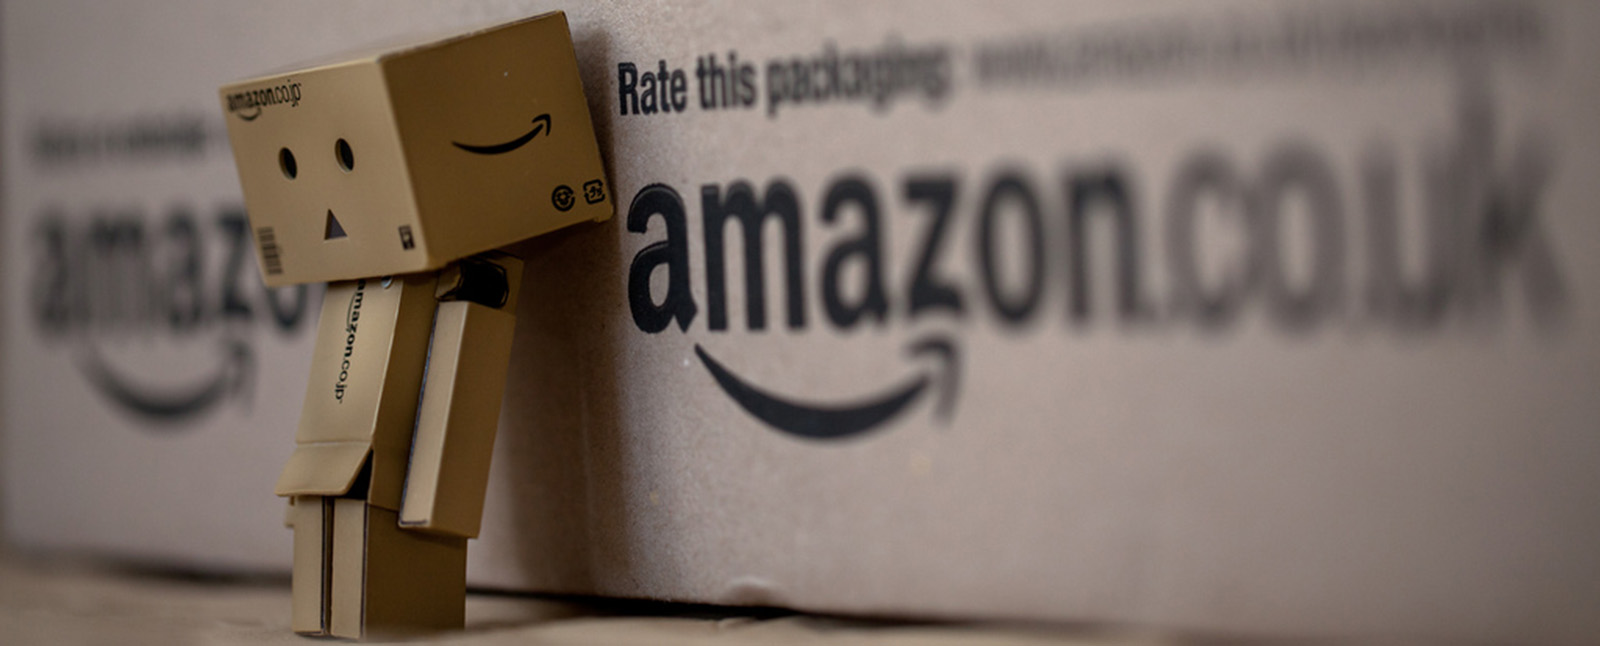 Amazon's total disrespect for artist's rights!